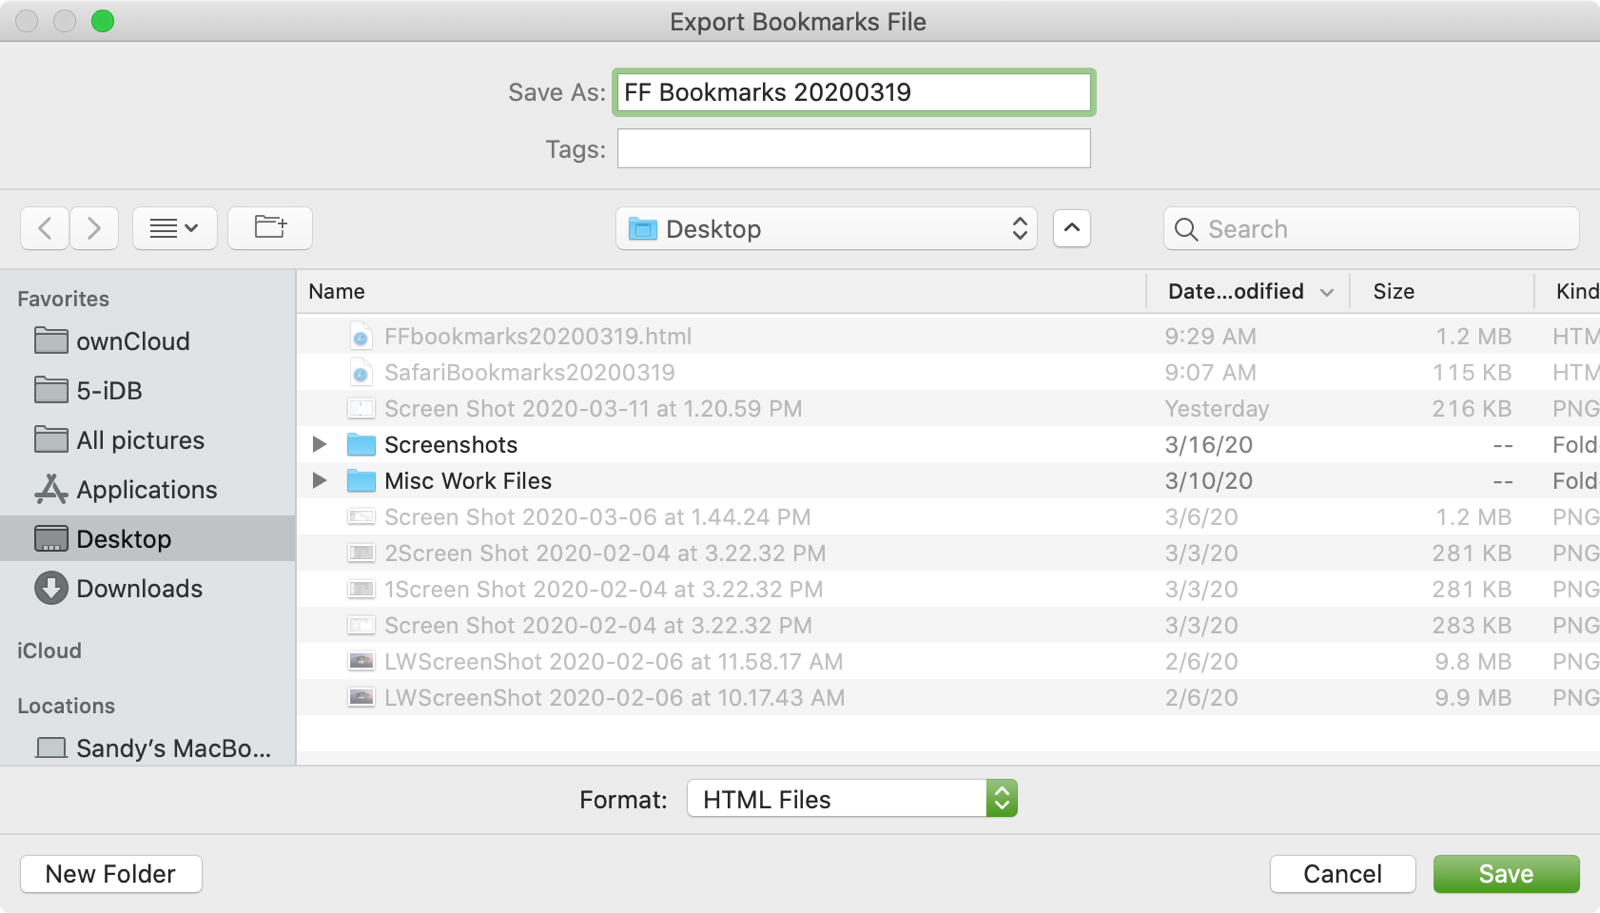 Firefox Export Bookmarks File